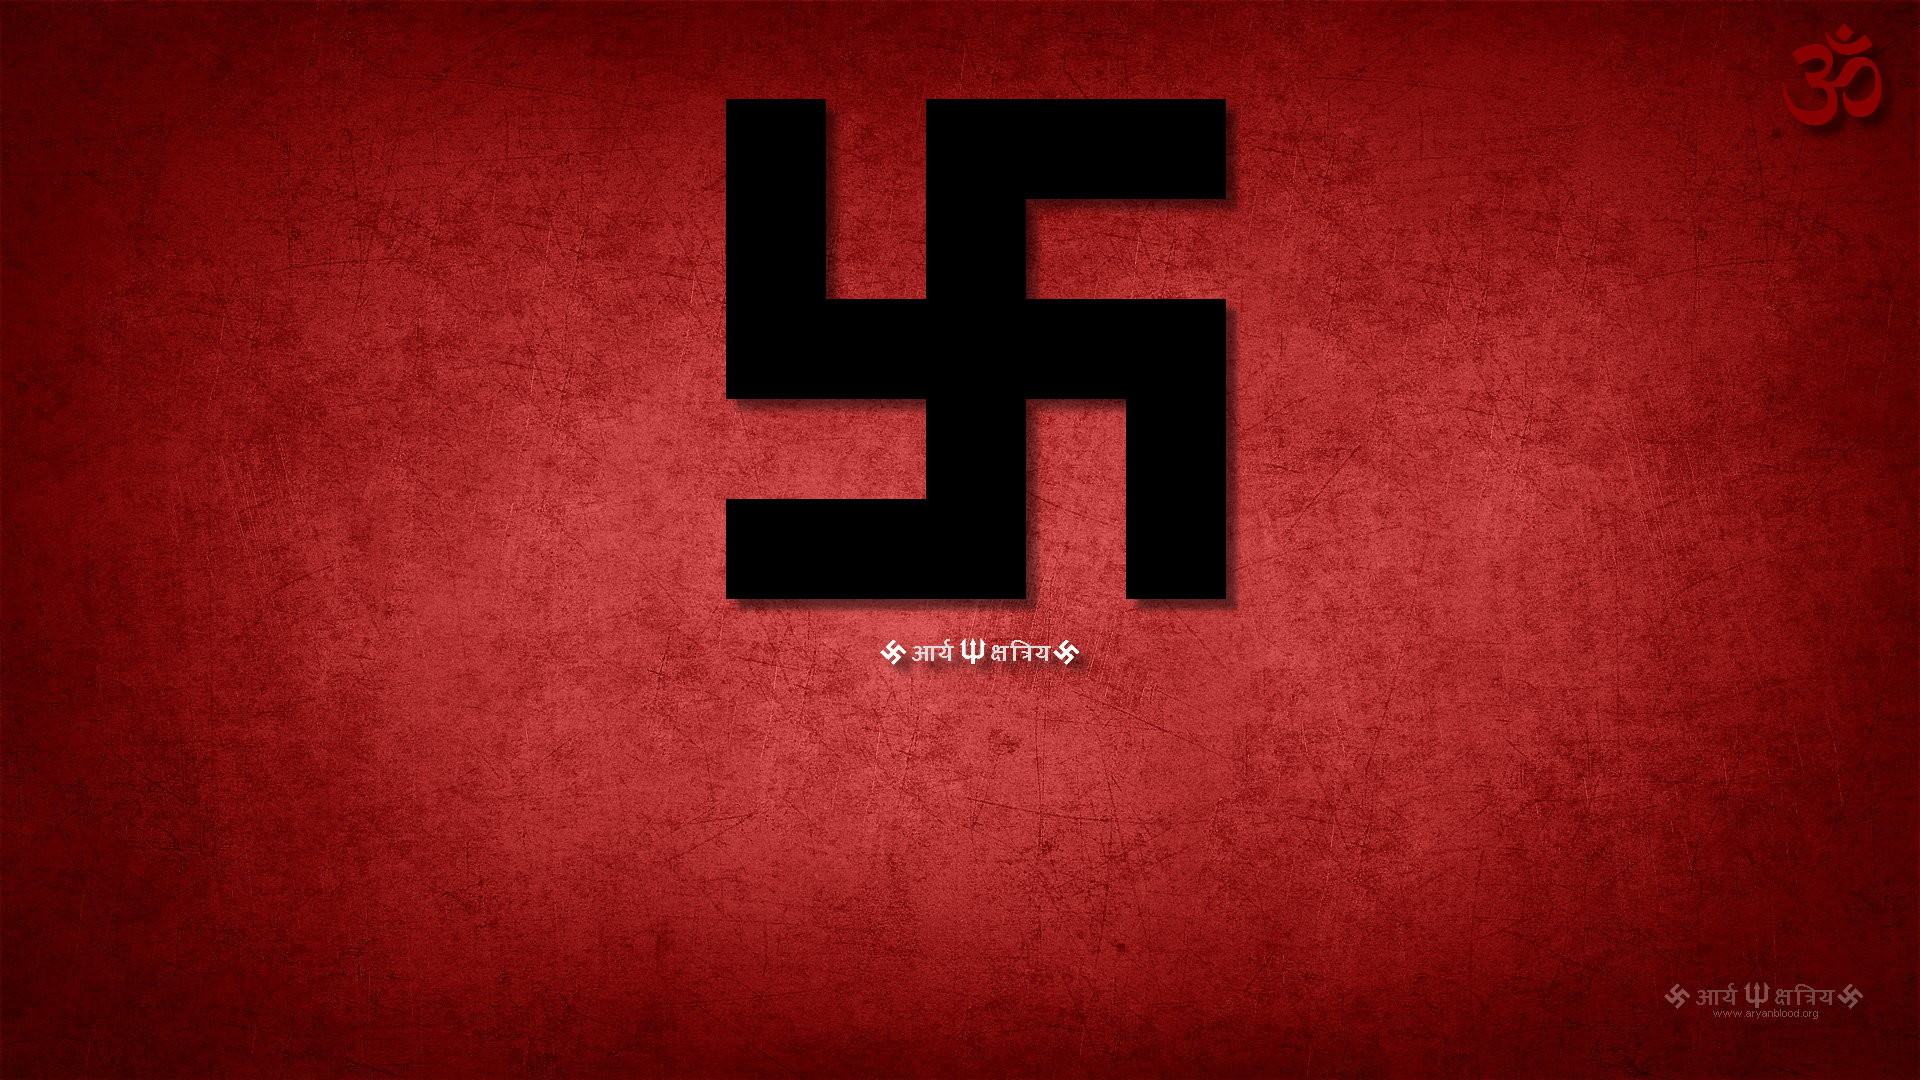 1920x1080 Om swastika wallpaper.